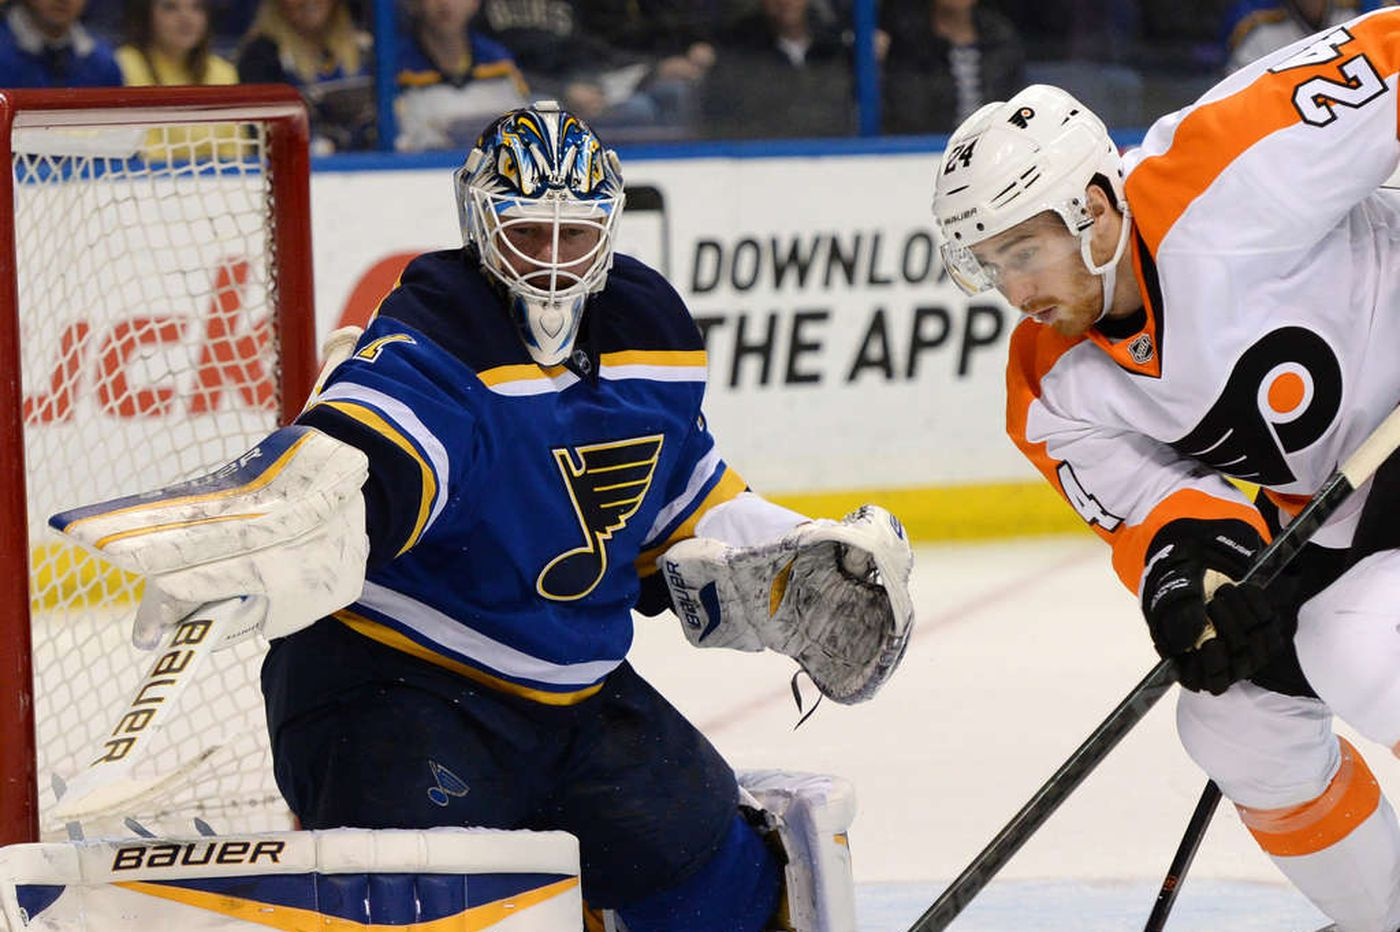 Mason dazzles but Flyers fall to Blues in shootout